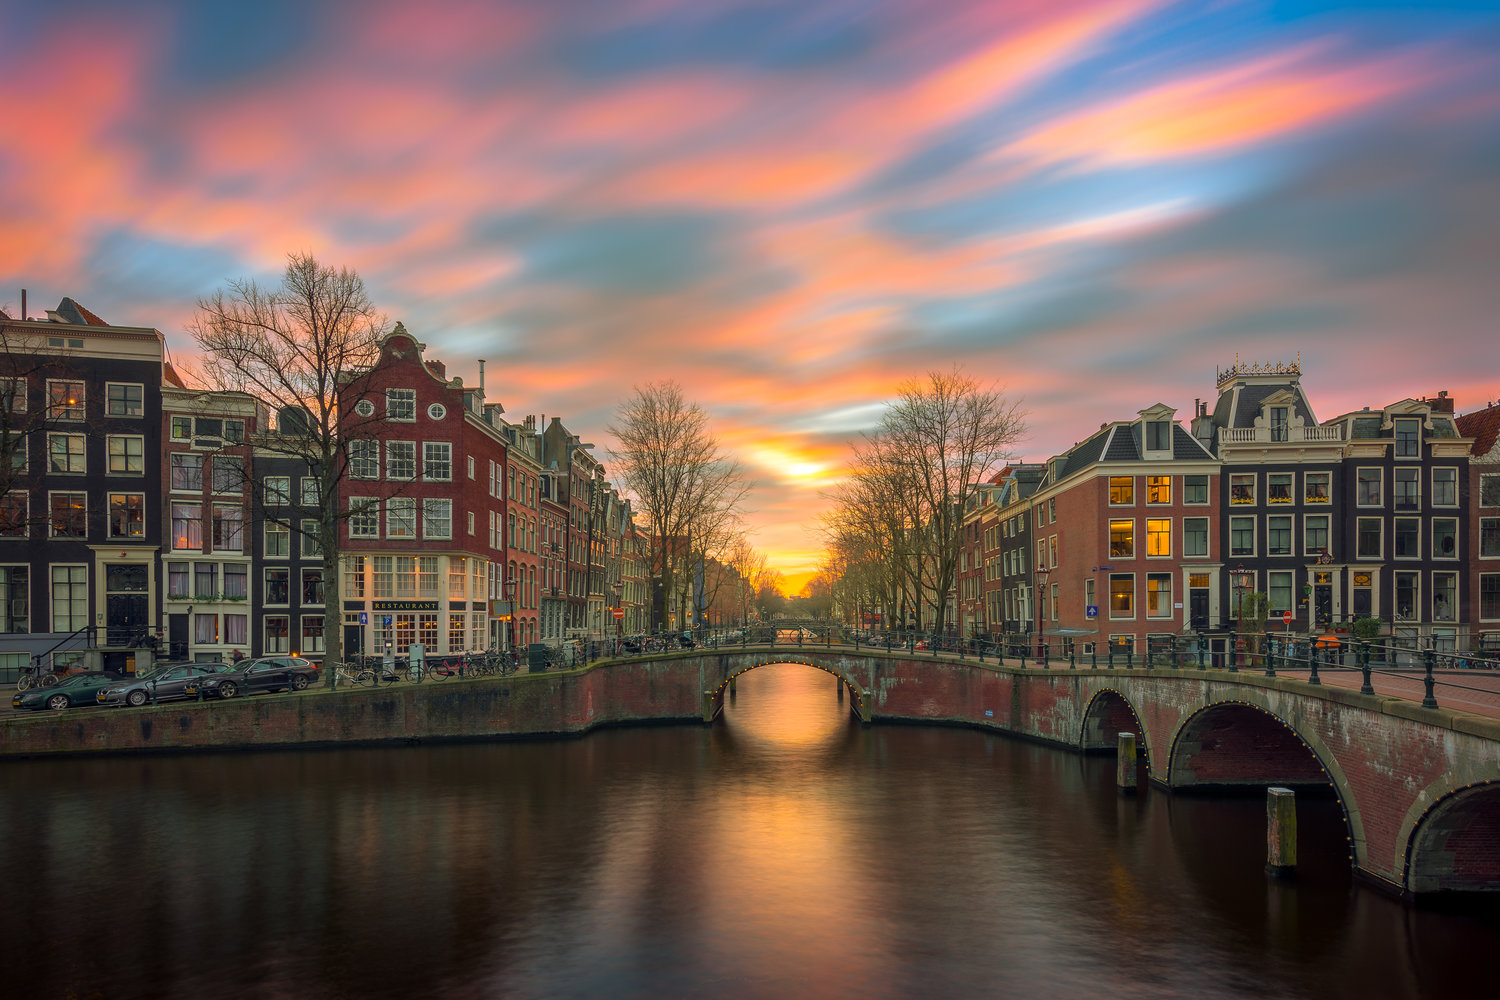 032f92f29 10 Pictures of The Netherlands That Will Make You Want to Visit Now — The  Opposite Travellers